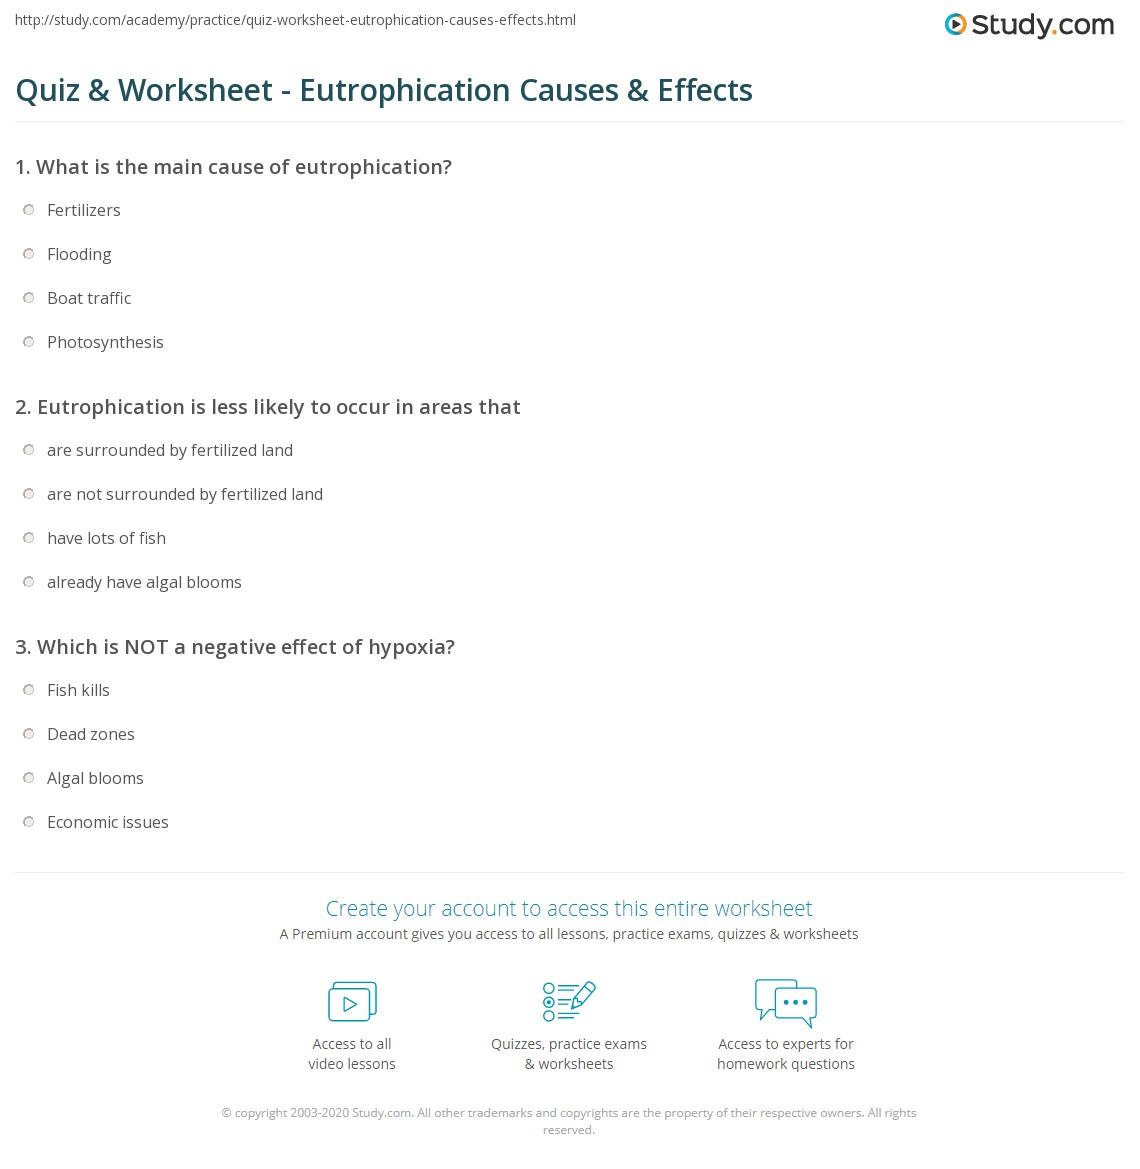 Quiz & Worksheet - Eutrophication Causes & Effects   Study.com